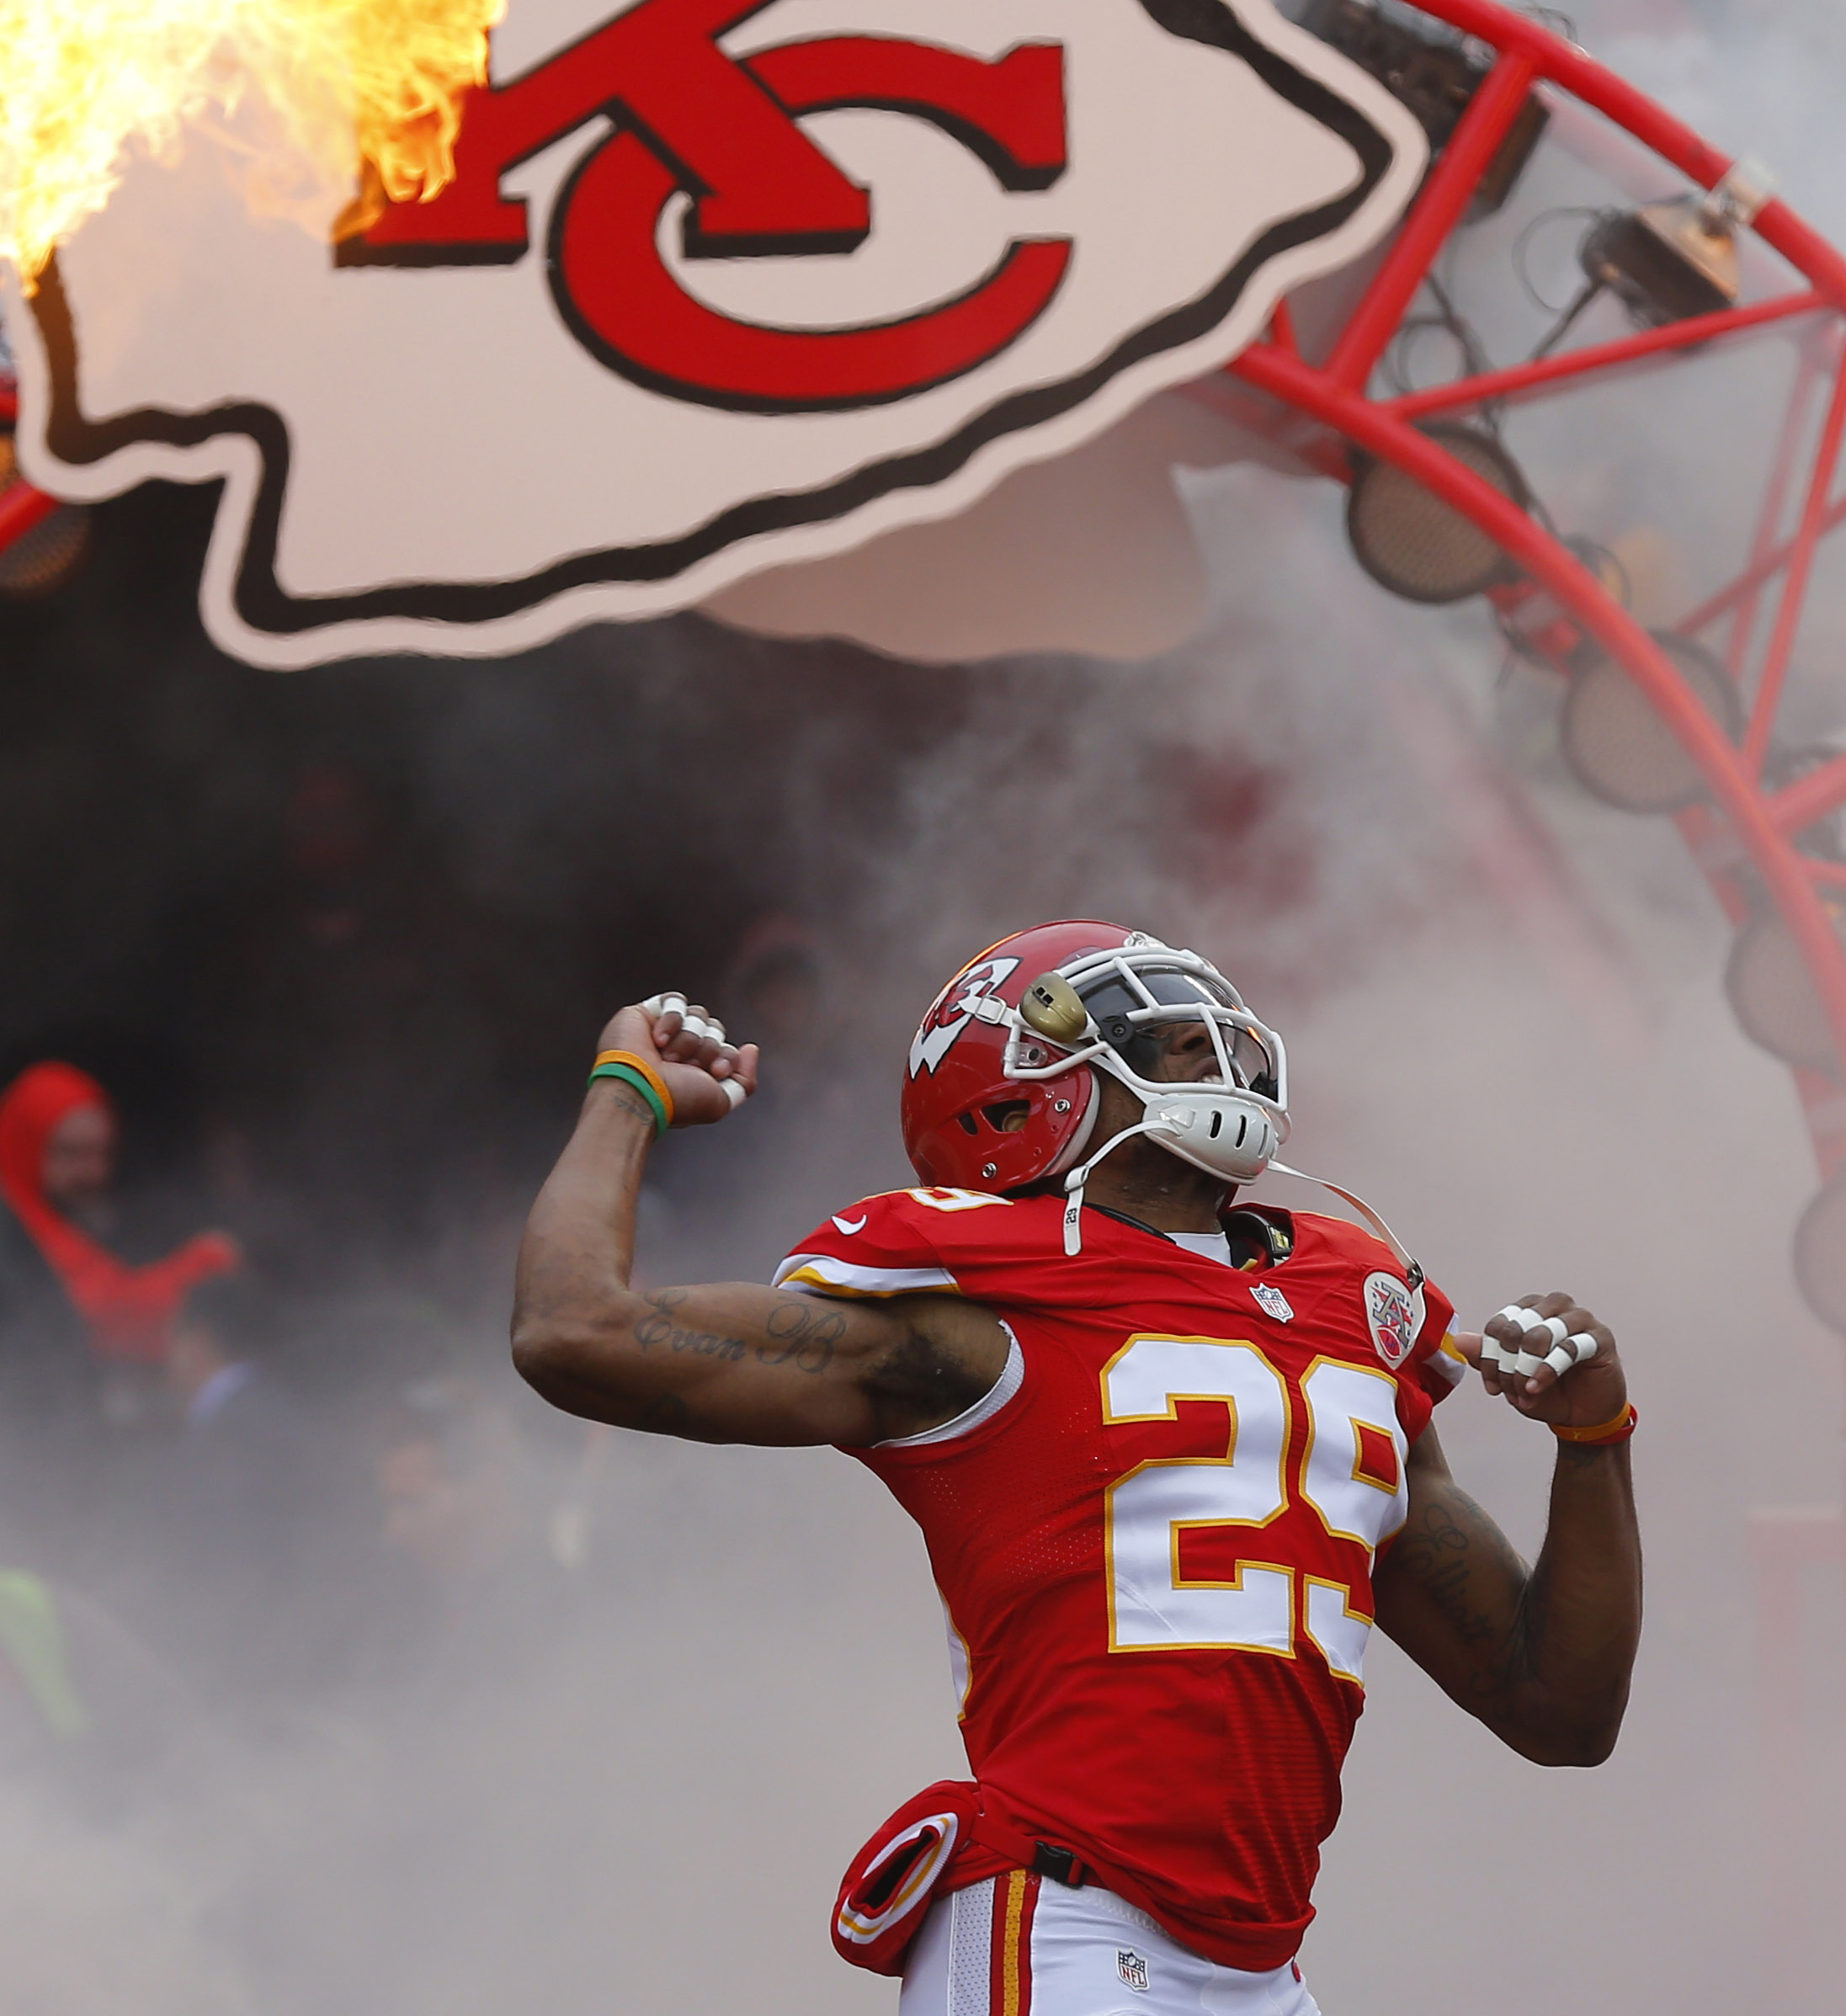 FILE - In this Nov. 16, 2014, file photo, Kansas City Chiefs strong safety Eric Berry (29) enters the field prior to an NFL football game against the Seattle Seahawks in Kansas City, Mo. Berry is gearing up for a fight after a mass was found in his chest